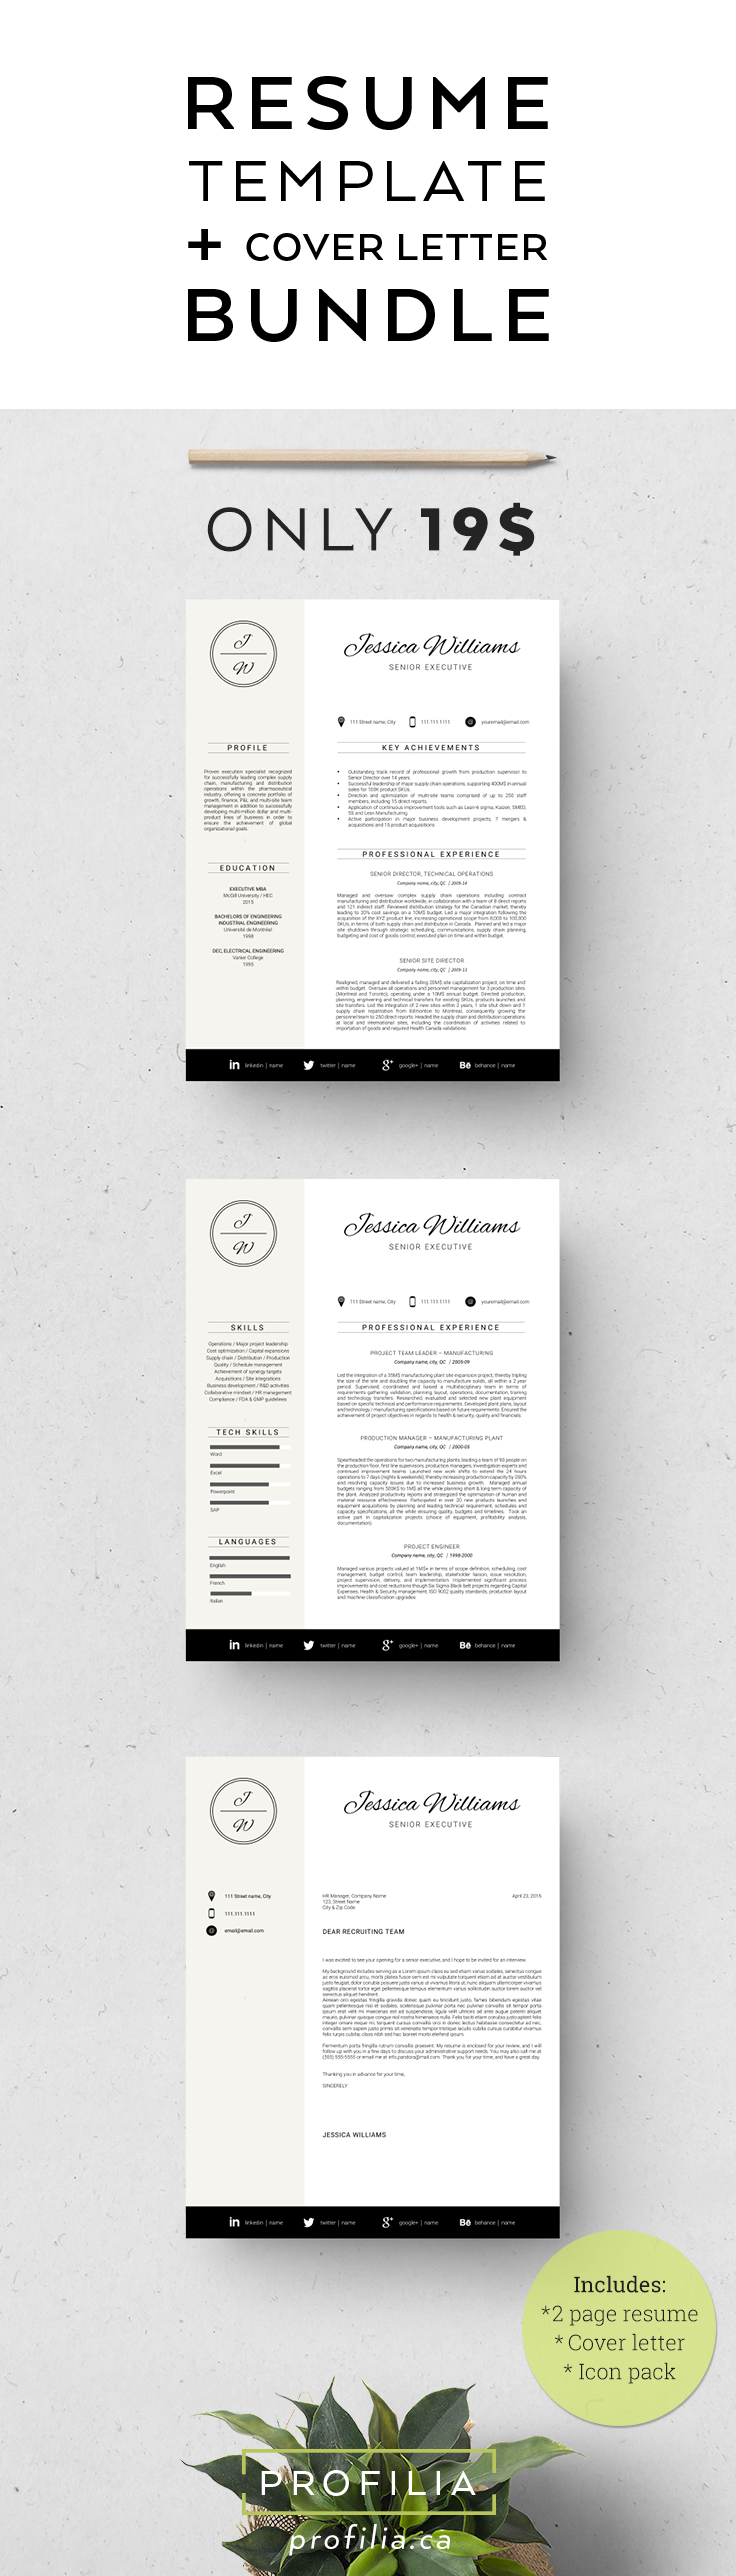 Font For Cover Letter Modern Resume & Cover Letter Template3 Page Bundle With Fonts